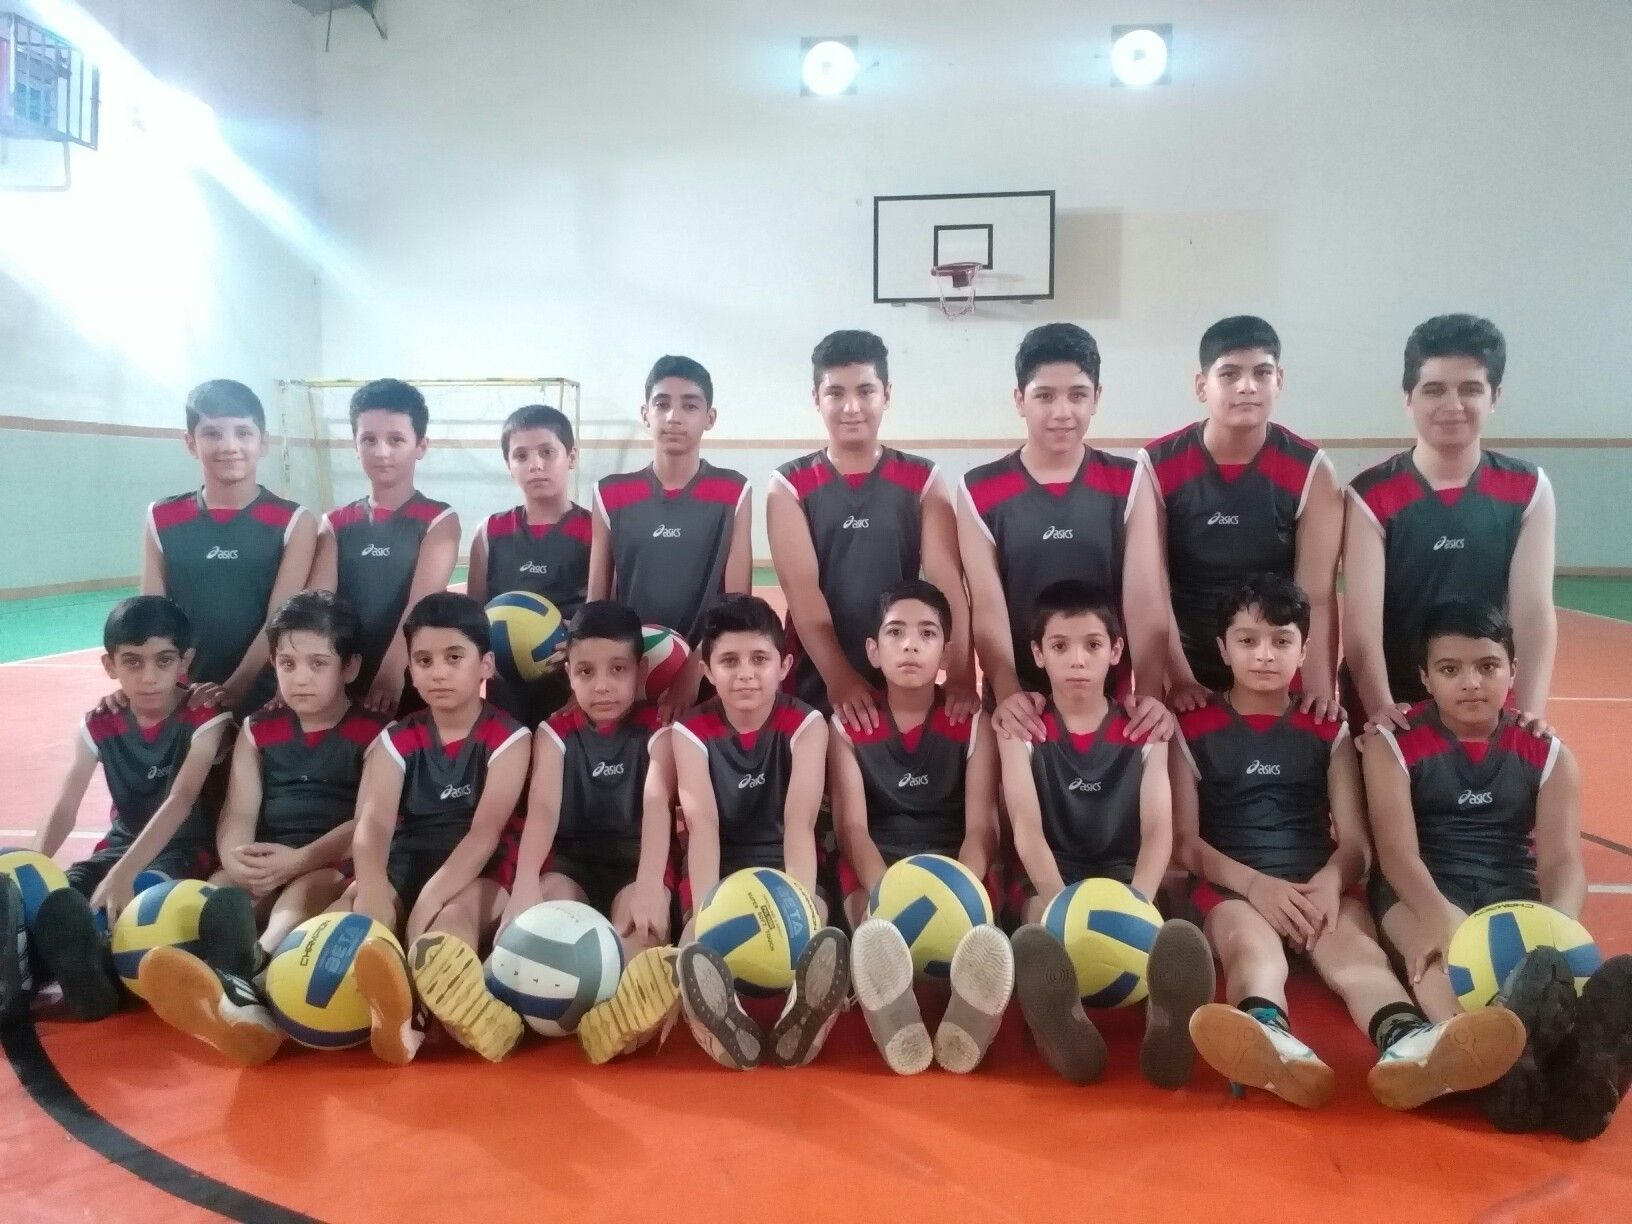 Iran Volleyball Volleyball Mehdibehrouzivajari Vollyball Learning Volleyball Training Volleyball Coach مهدی بهروزی مهدی بهروزی و Volleyball Coach Youth